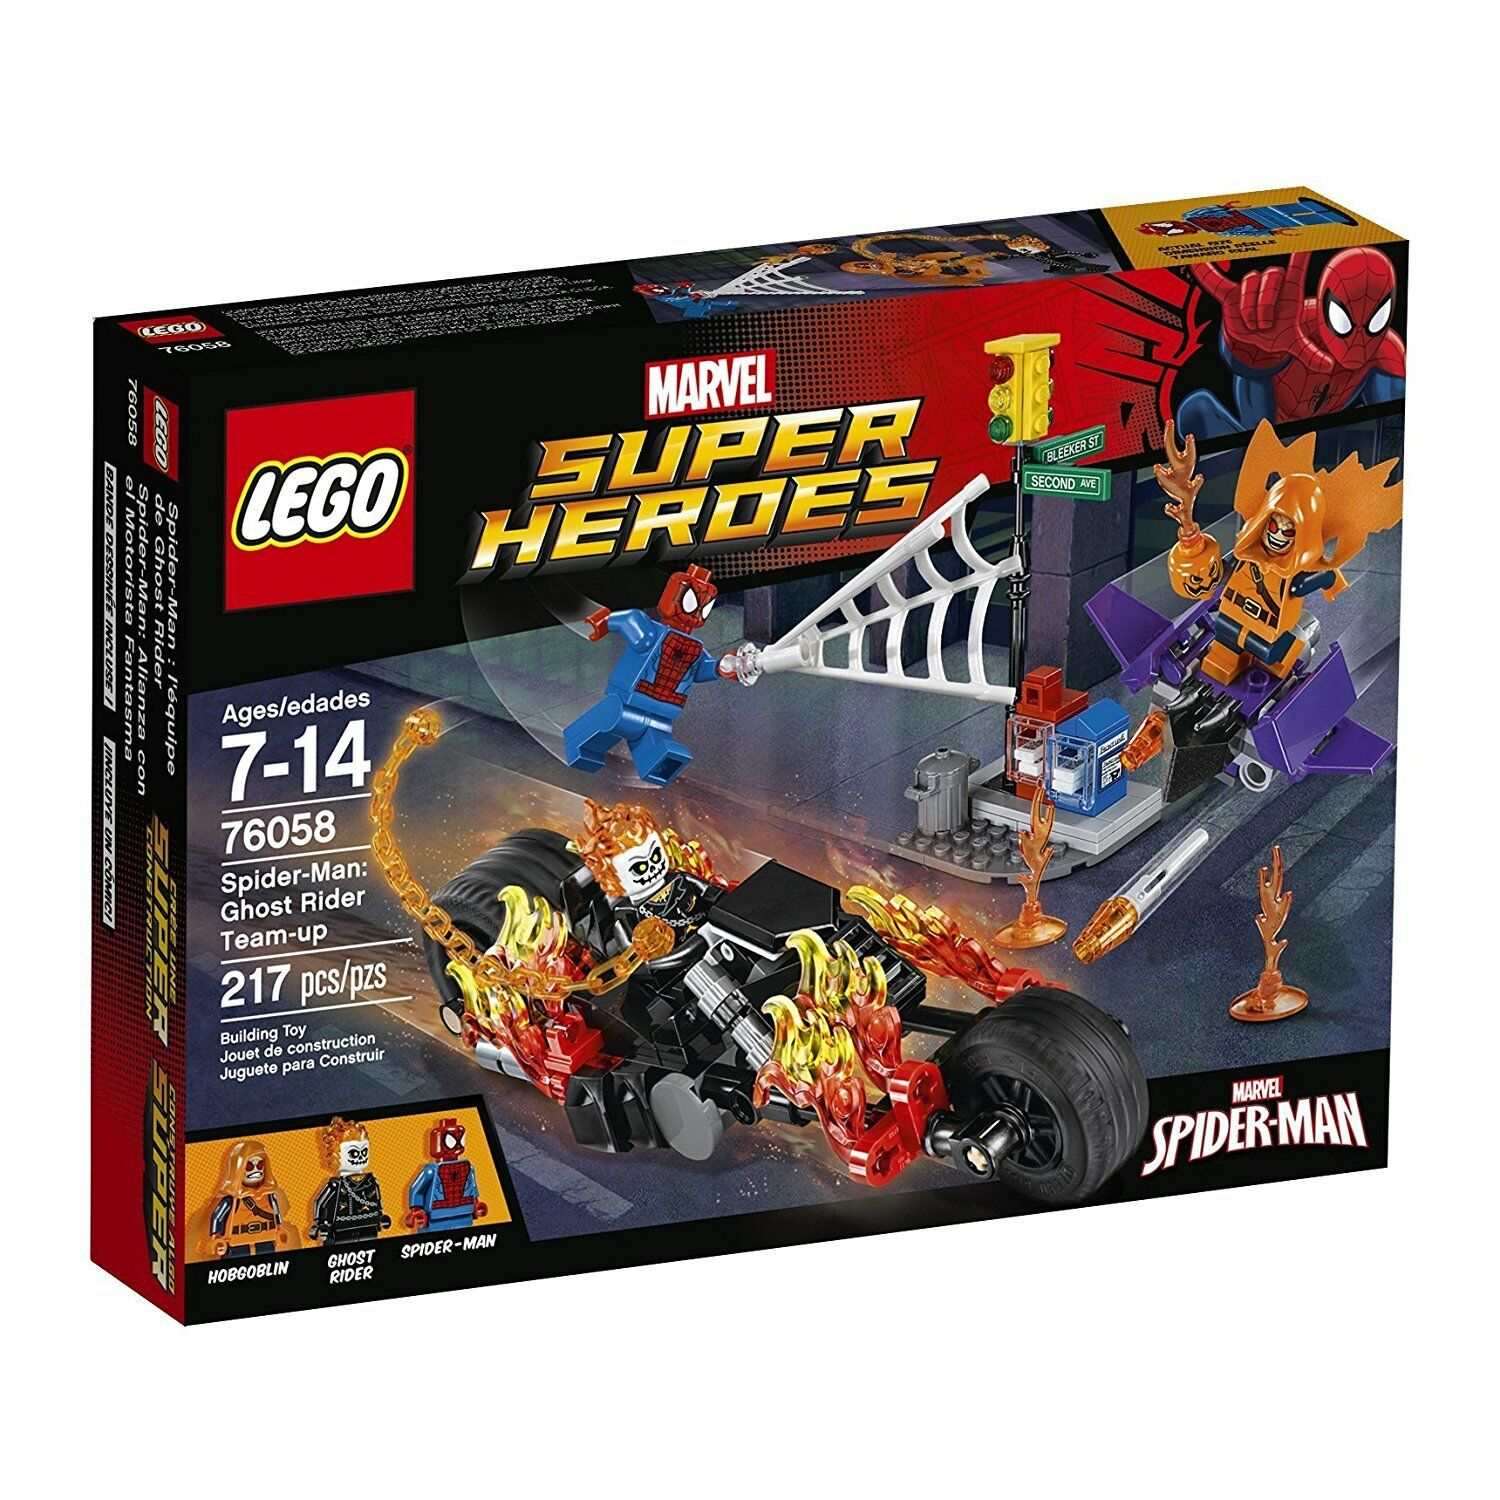 LEGO  SPIDER-MAN: GHOST RIDER TEAM-UP BUILDING SET  Marvel Superheroes 76058